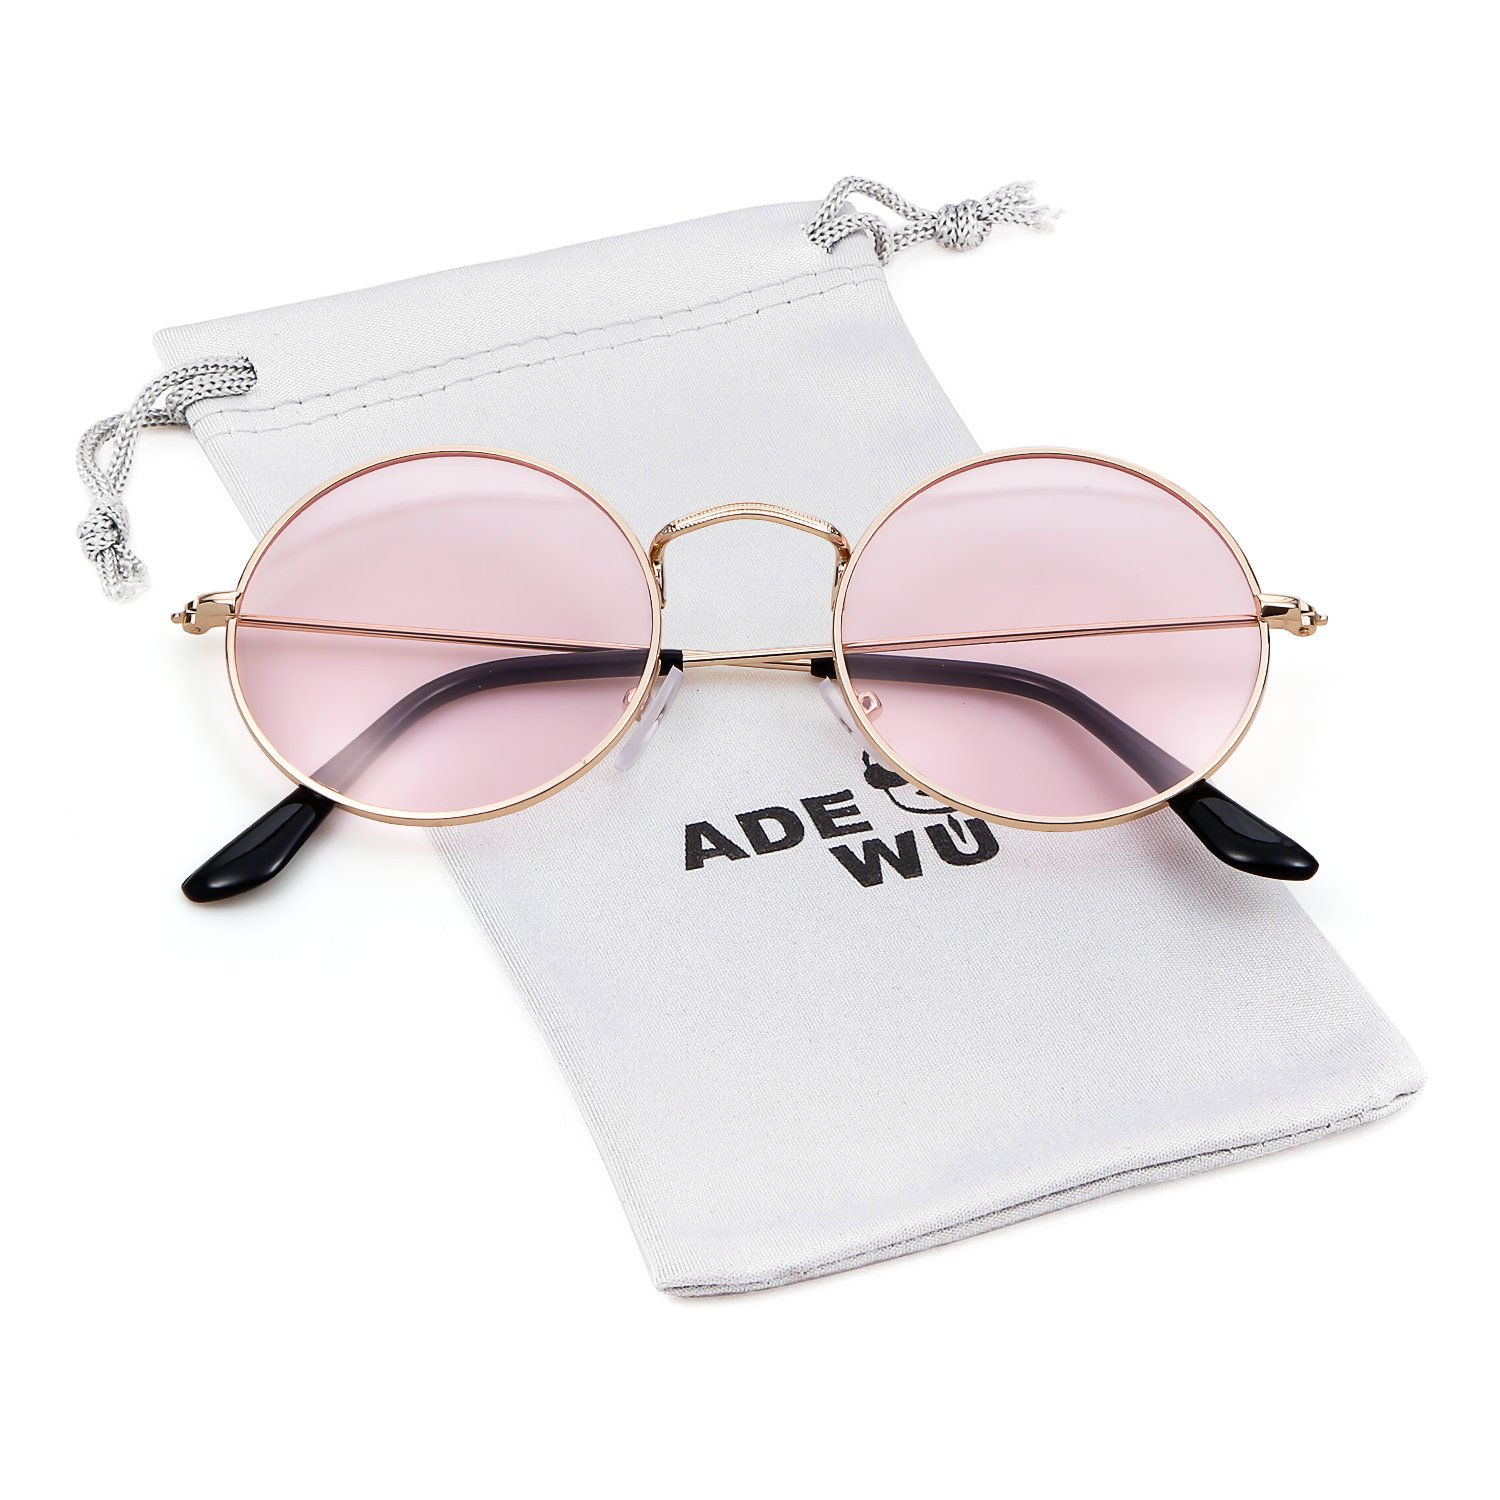 ADEWU Round Sunglasses Vintage Street Style Eyewear with Thin Metal Rim Men Women